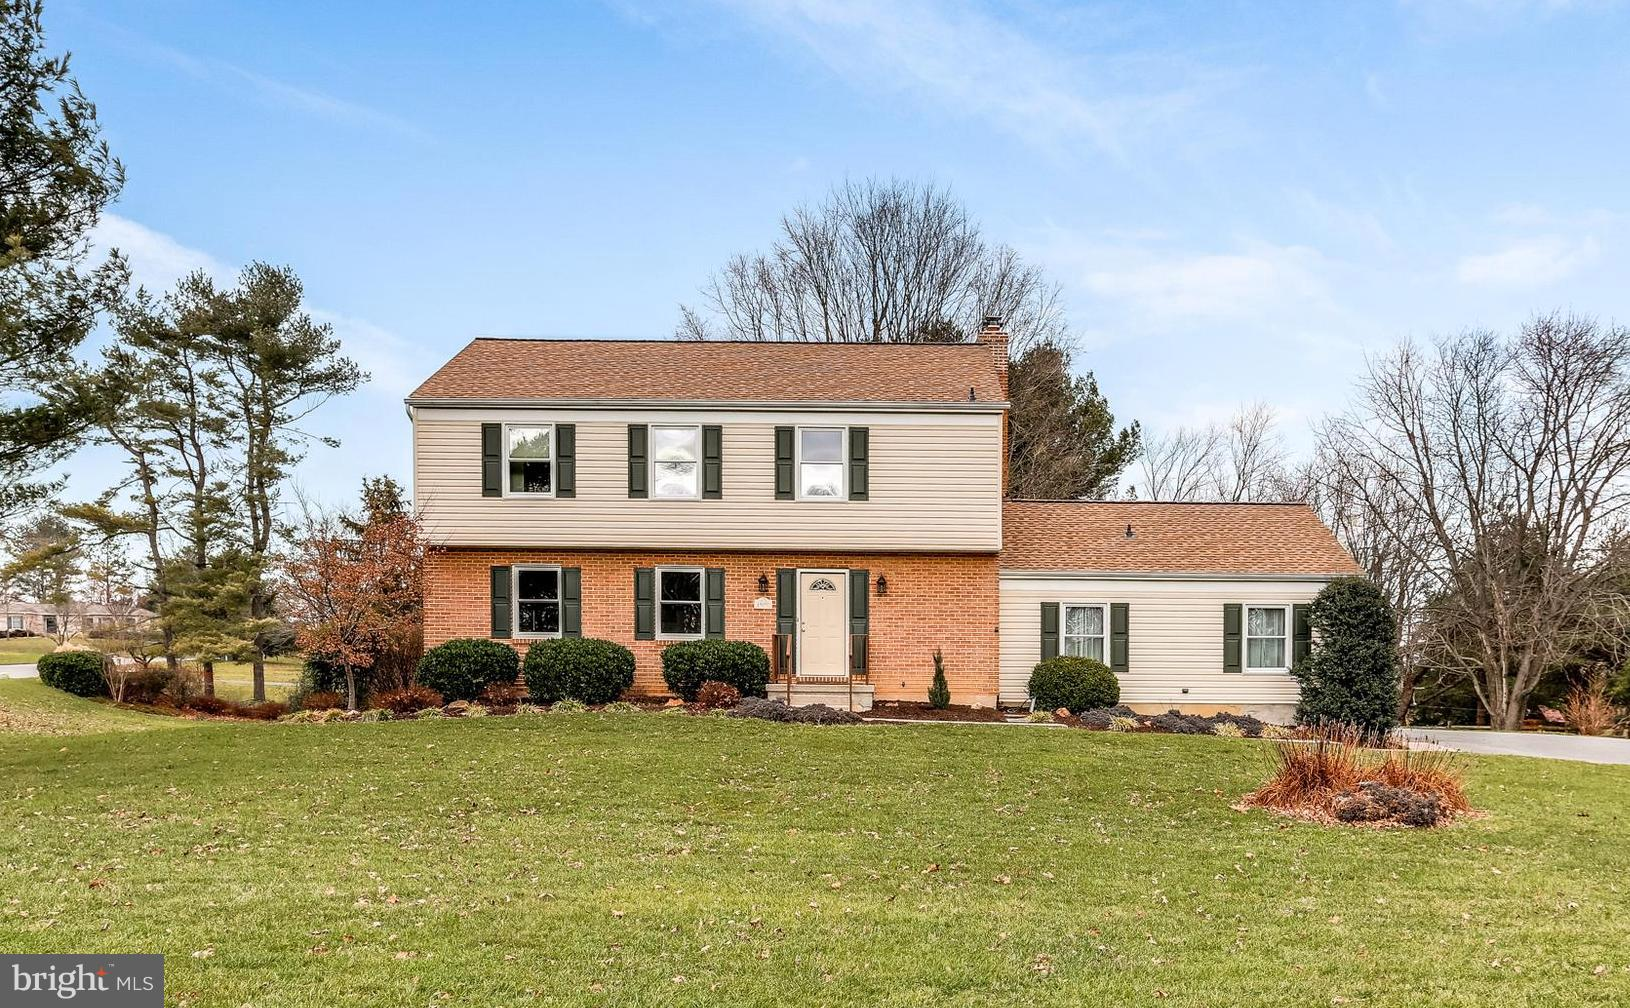 14090 GARED DRIVE, GLENWOOD, MD 21738